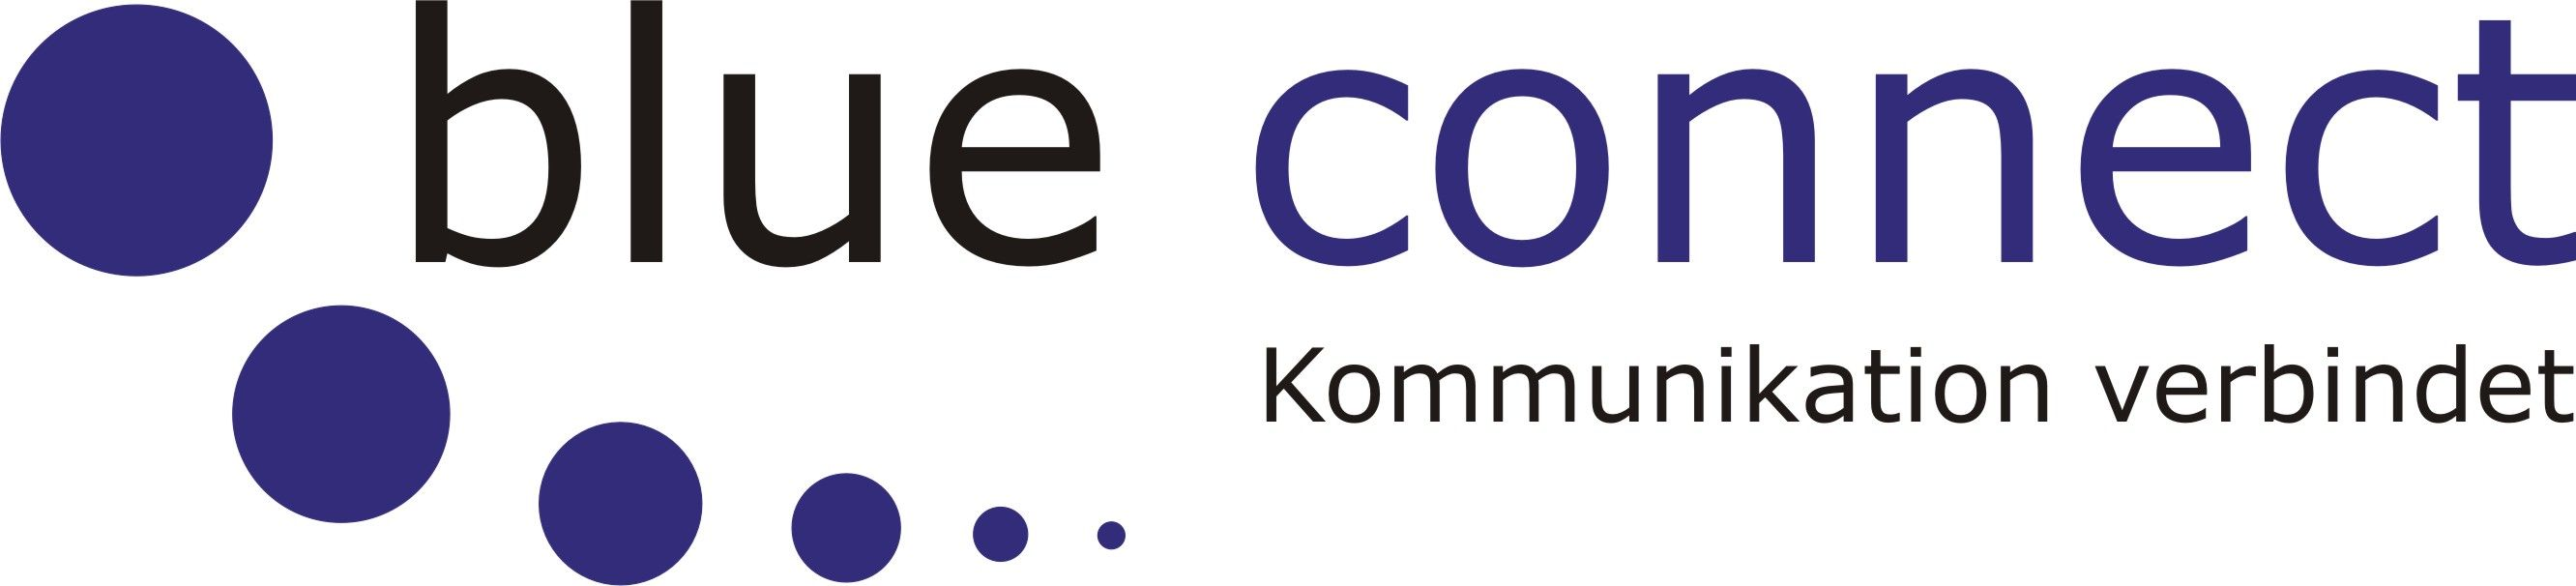 Blue Connect GmbH - Logo